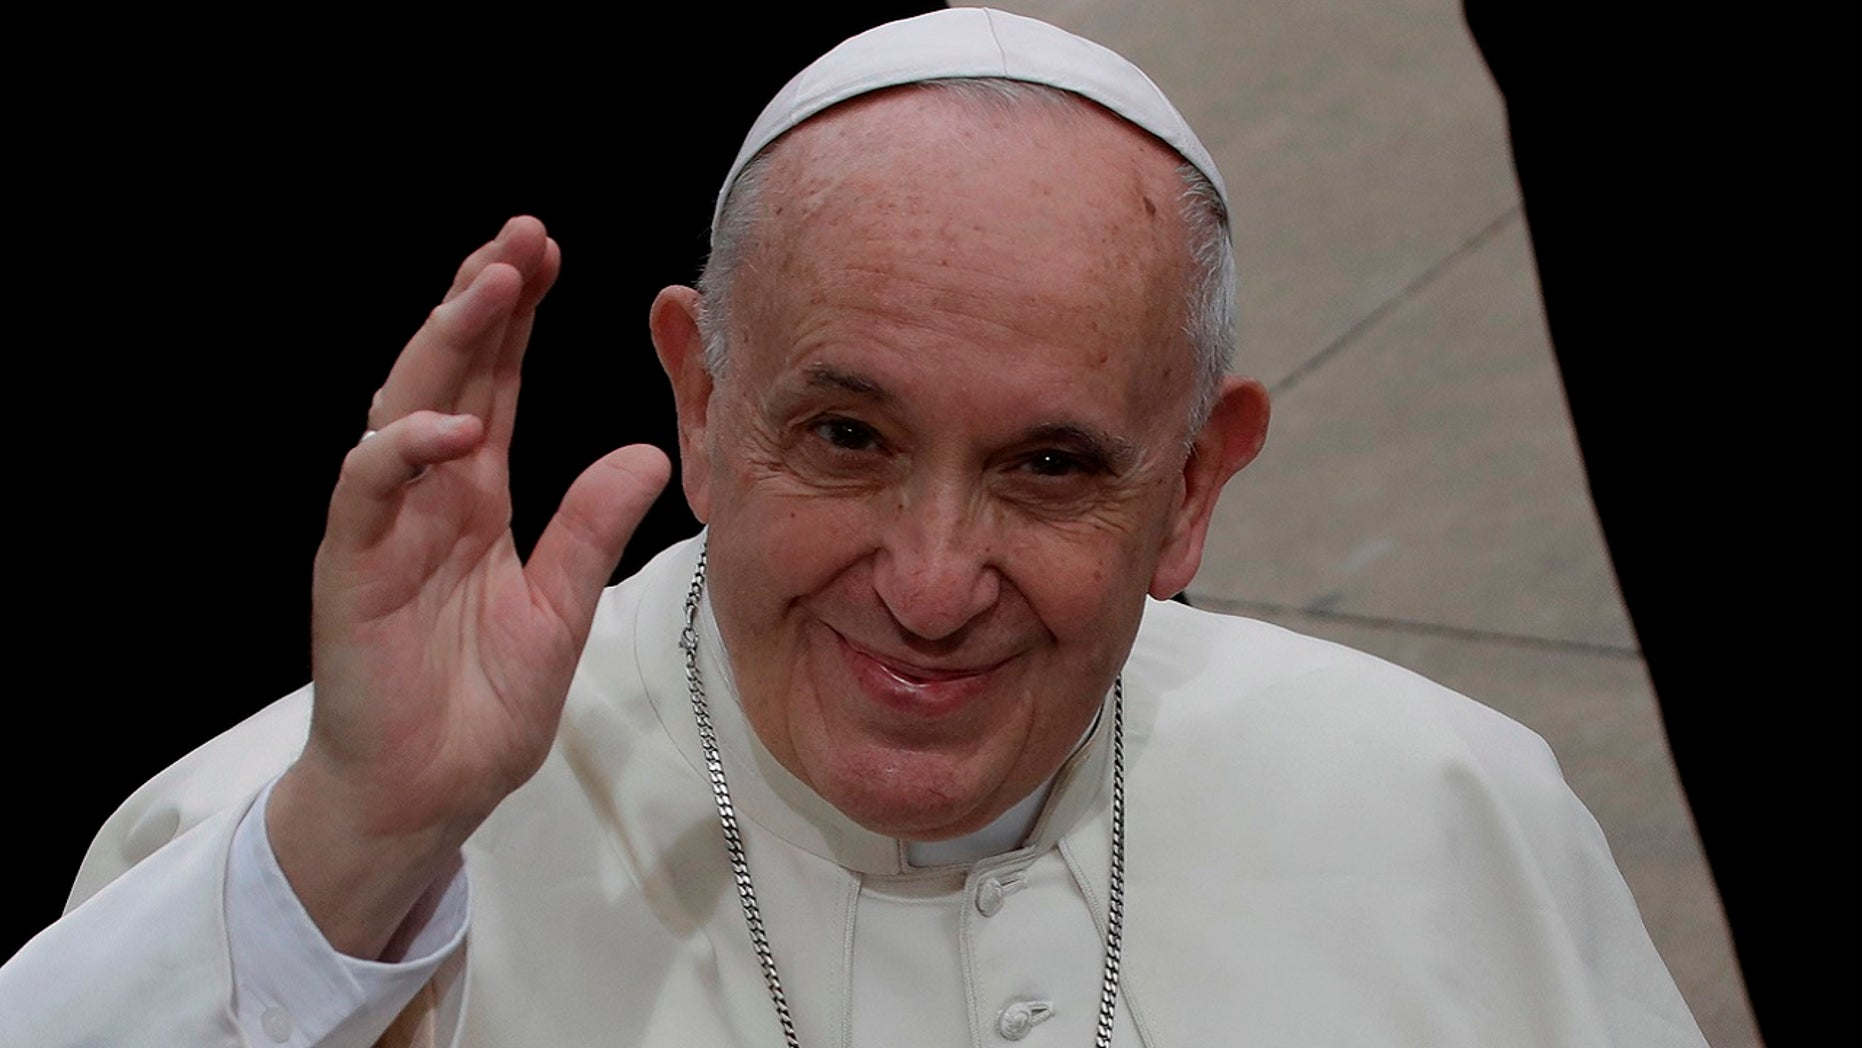 Pope Francis waves during his visit to the parish church of San Paolo della Croce, in Corviale neighborhood, Rome, Sunday, April 15, 2018.